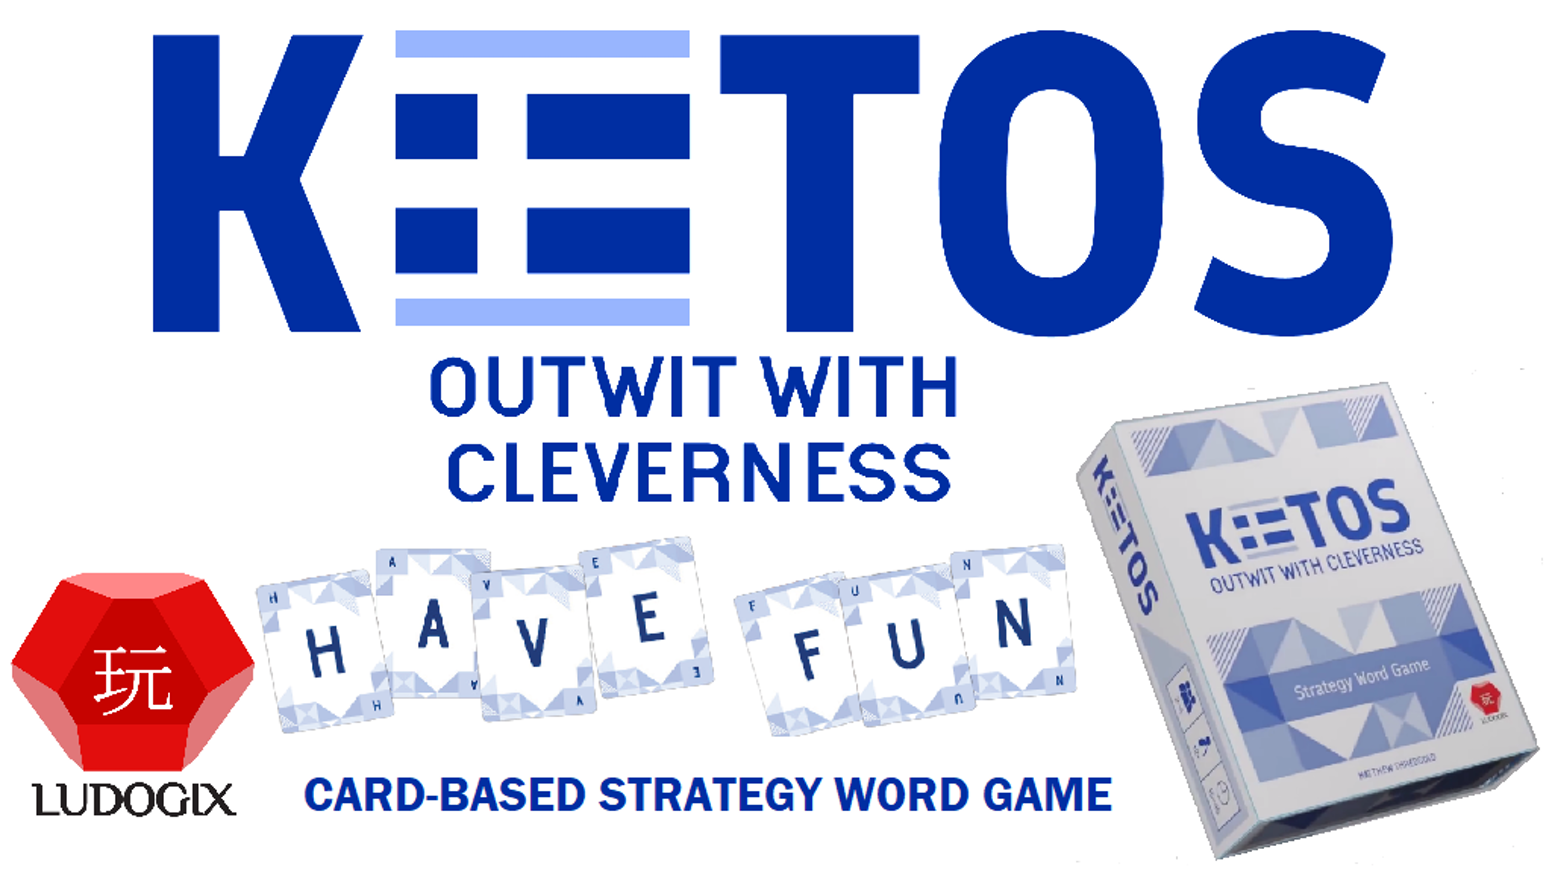 Kiitos - Outwit with Cleverness - a game by Matthew Thredgold - visit Ludogix.com by clicking Follow along!